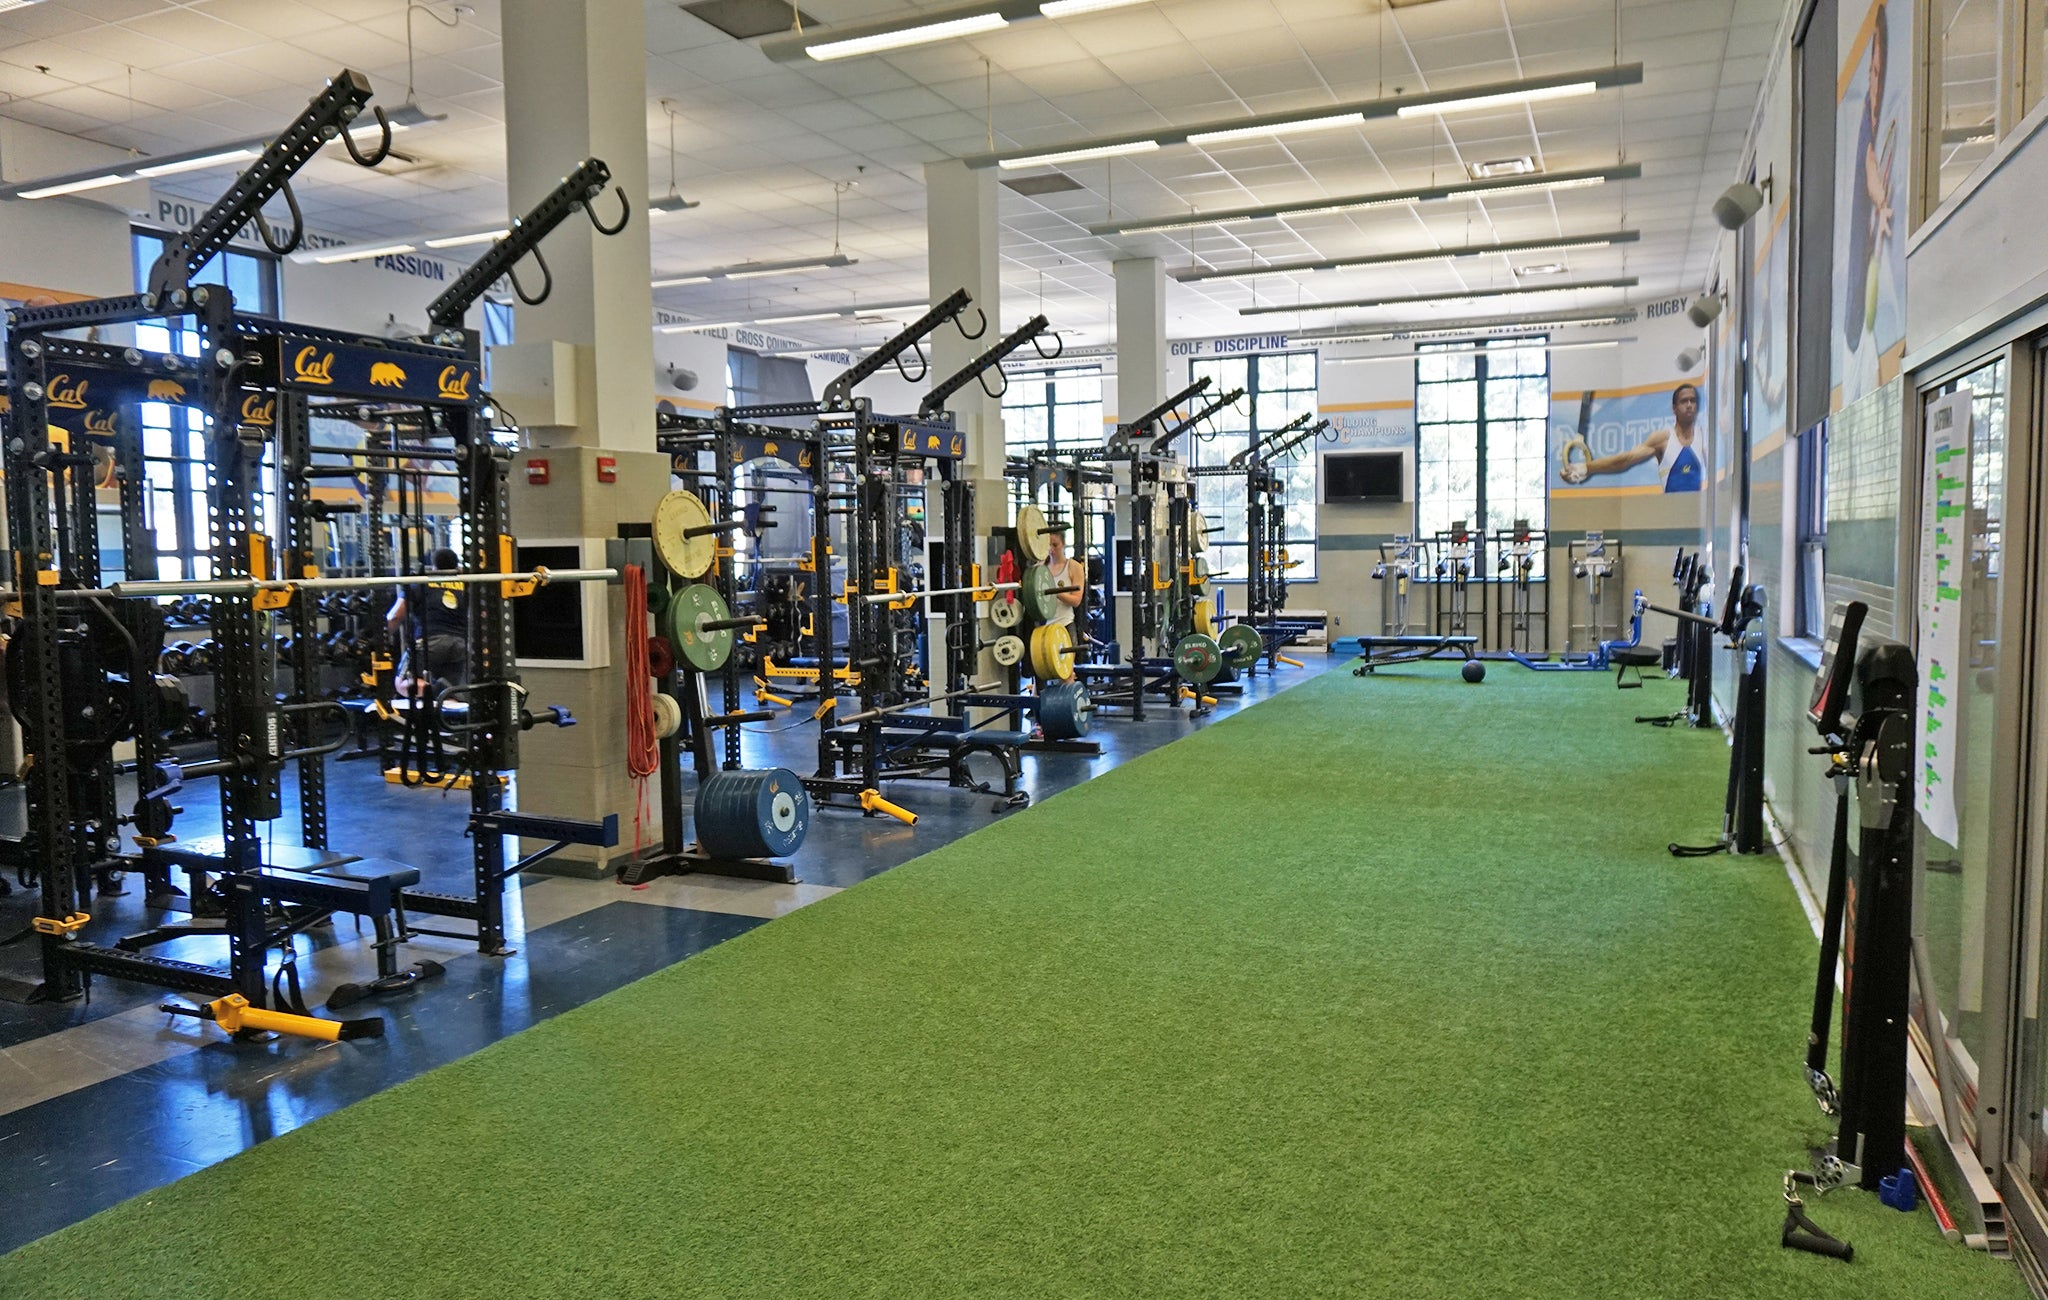 University of California Olympic Weight Room